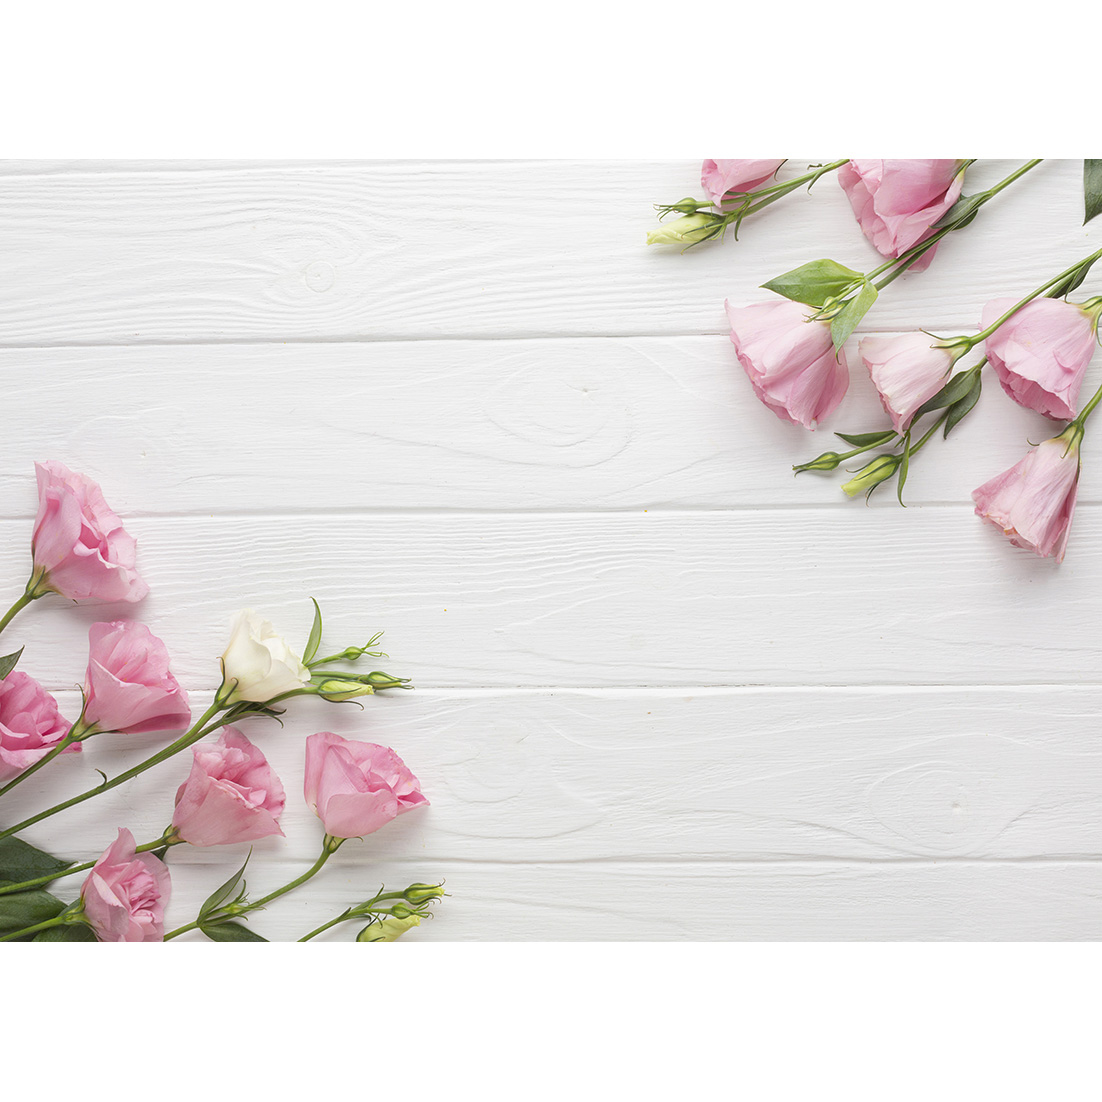 Pink Flowers White Wooden Board Photography Background Vinyl Cloth  Backdrops for Children Baby Portrait Photocall Photo Studio